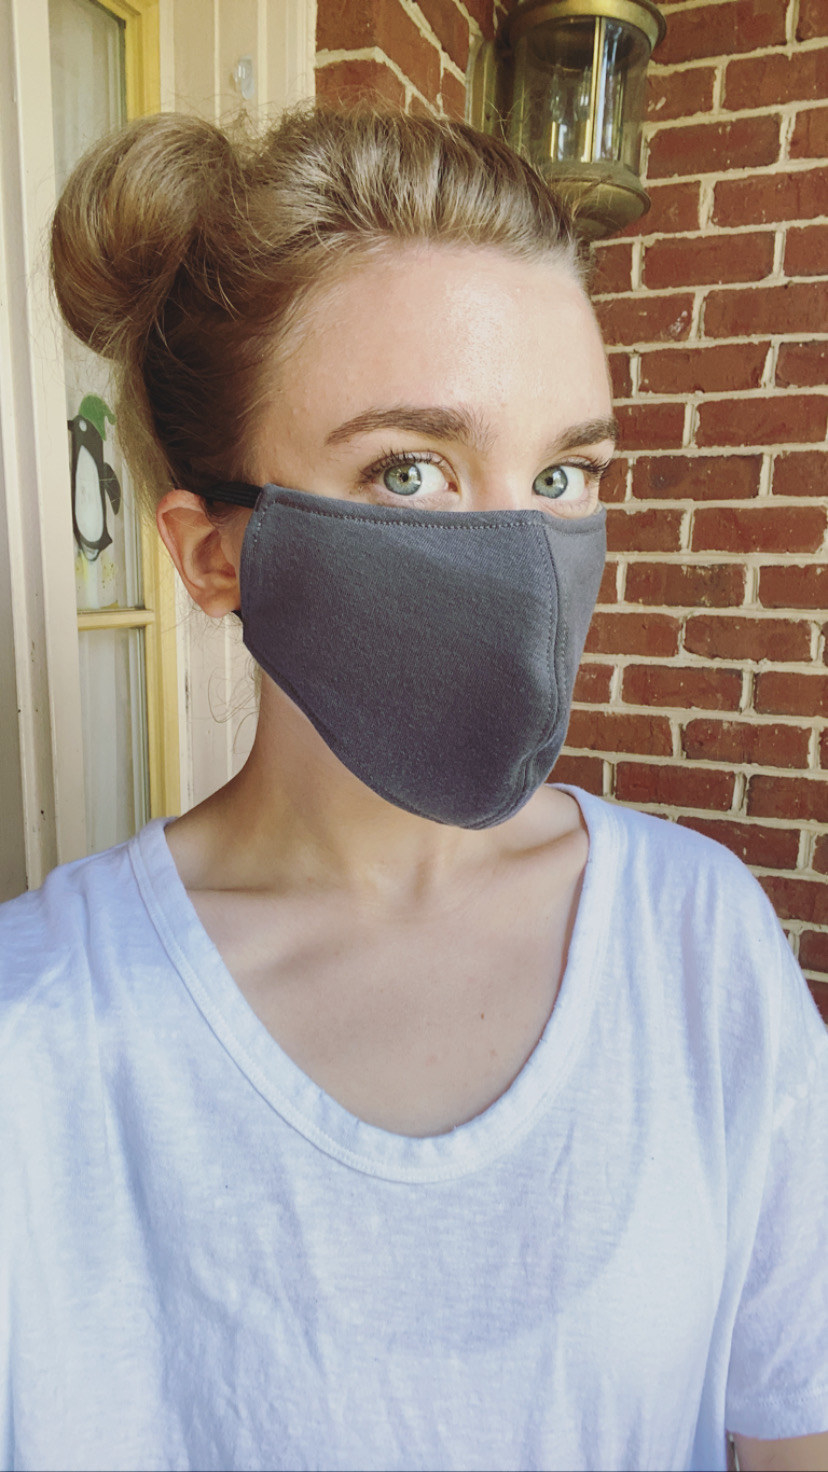 A BuzzFeed editor in a gray face mask